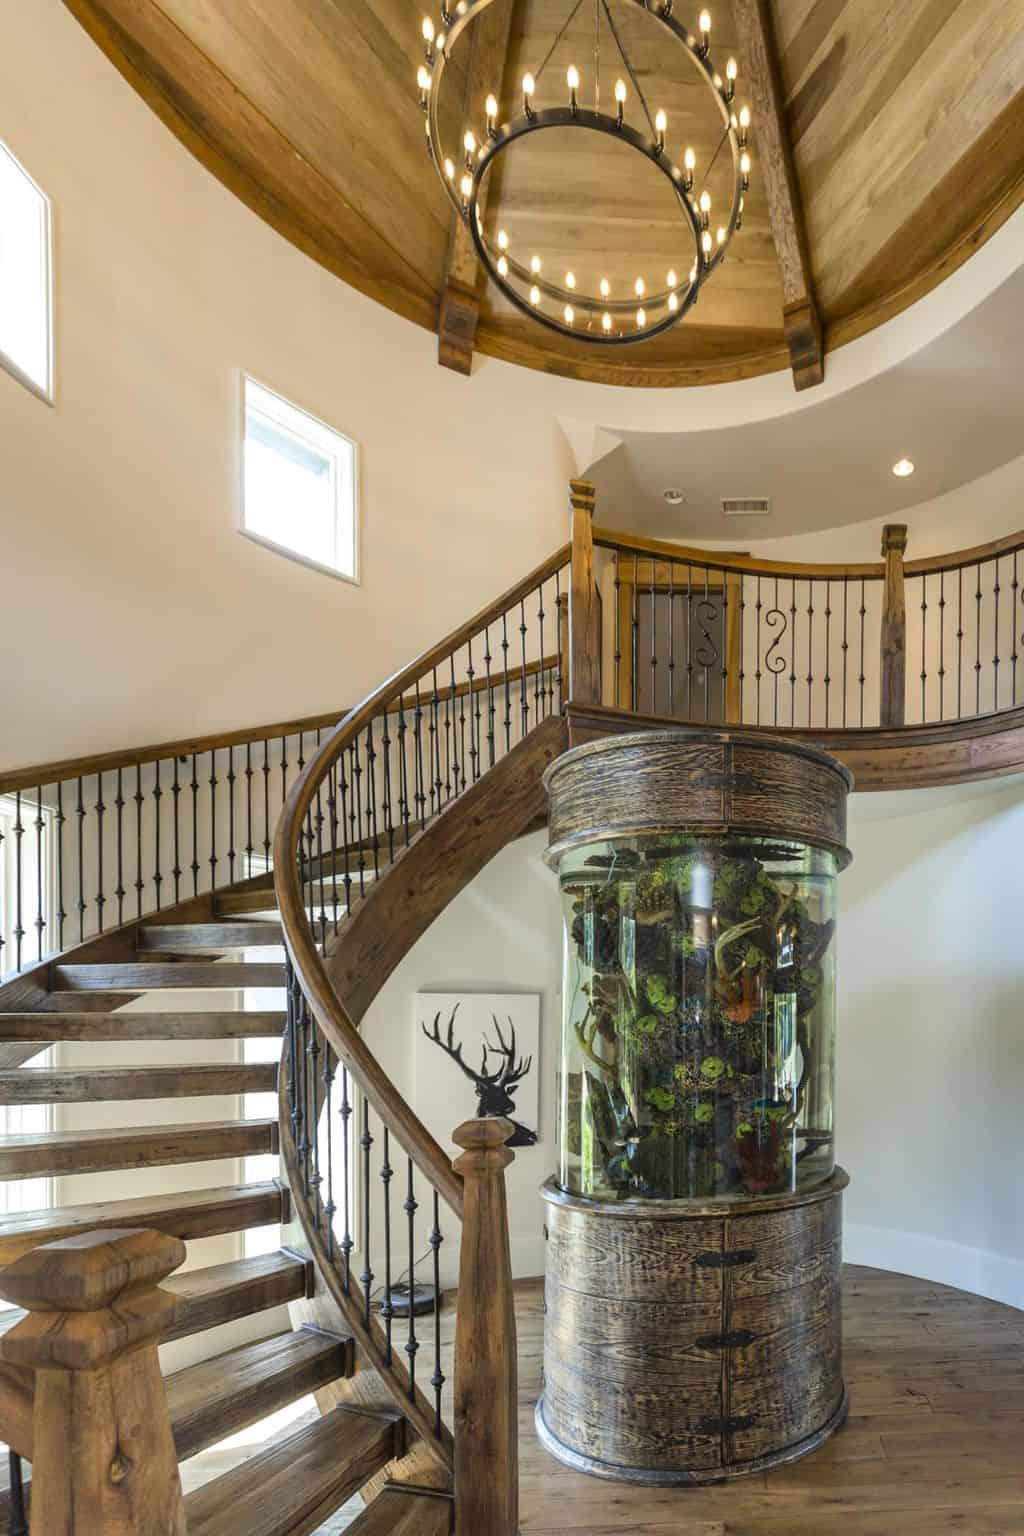 Cozy foyer decorated with a stag artwork and a spectacular fish tank situated next to the wooden staircase. It is illuminated by a two-tier chandelier that hung from the wood beam ceiling.